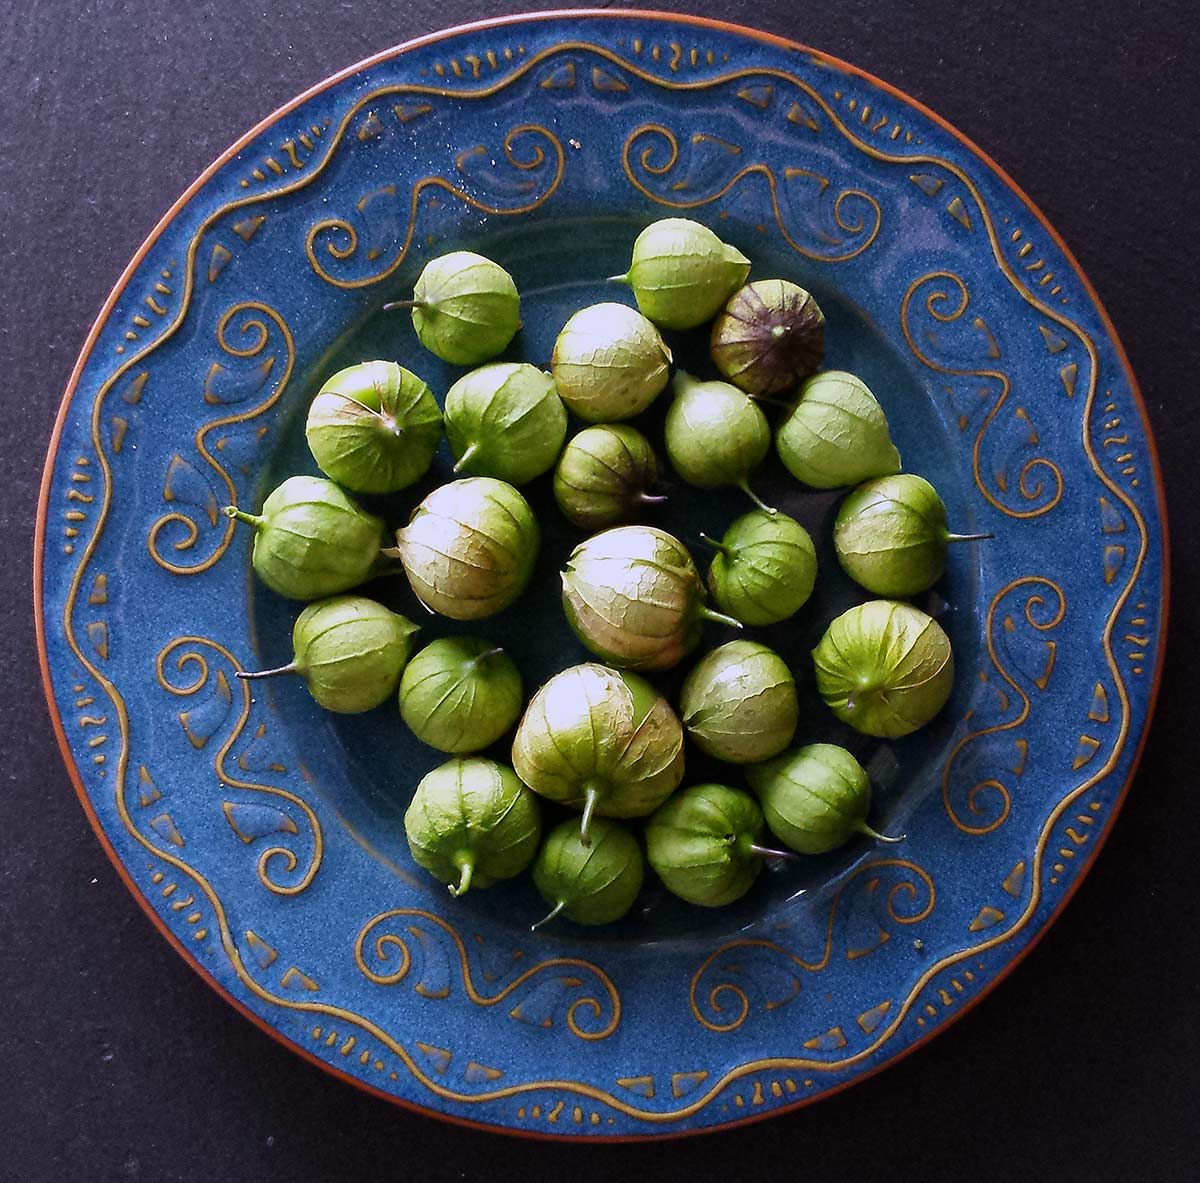 Wild tomatillos on a plate